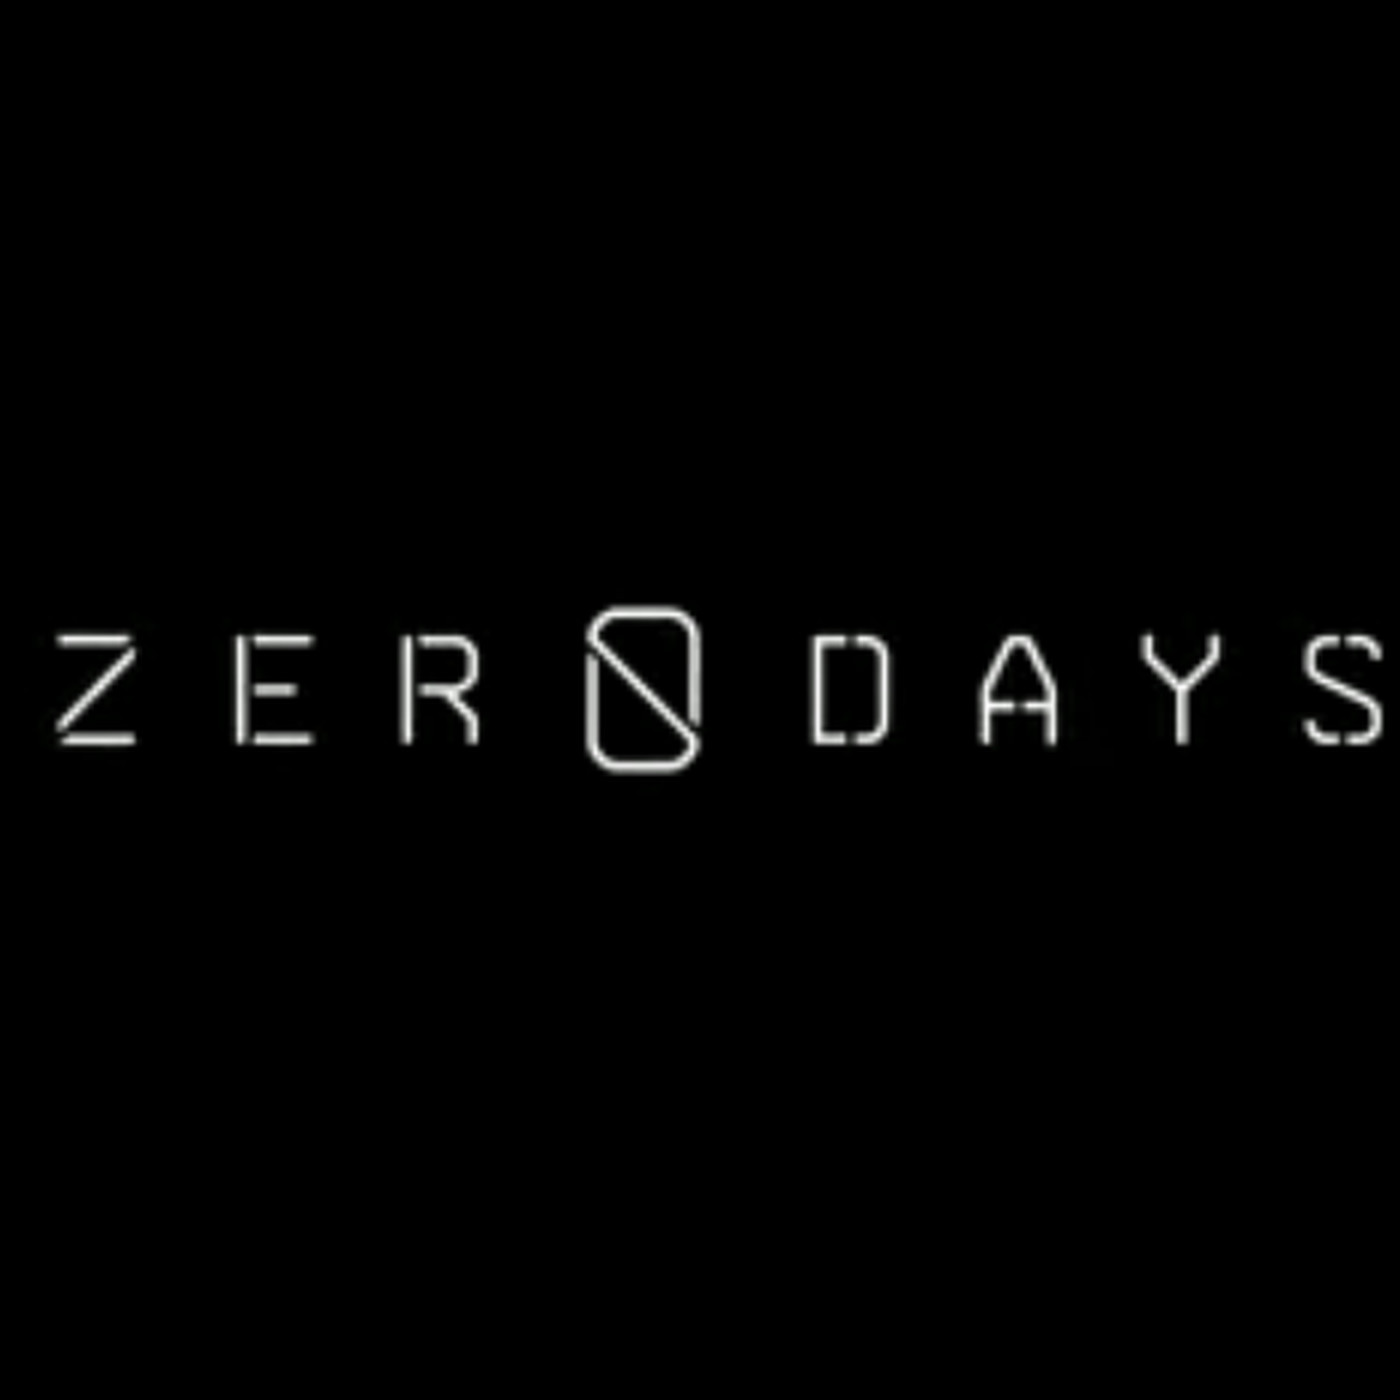 Watch the trailer for Zero Days Alex Gibneys look at the 1400x1400